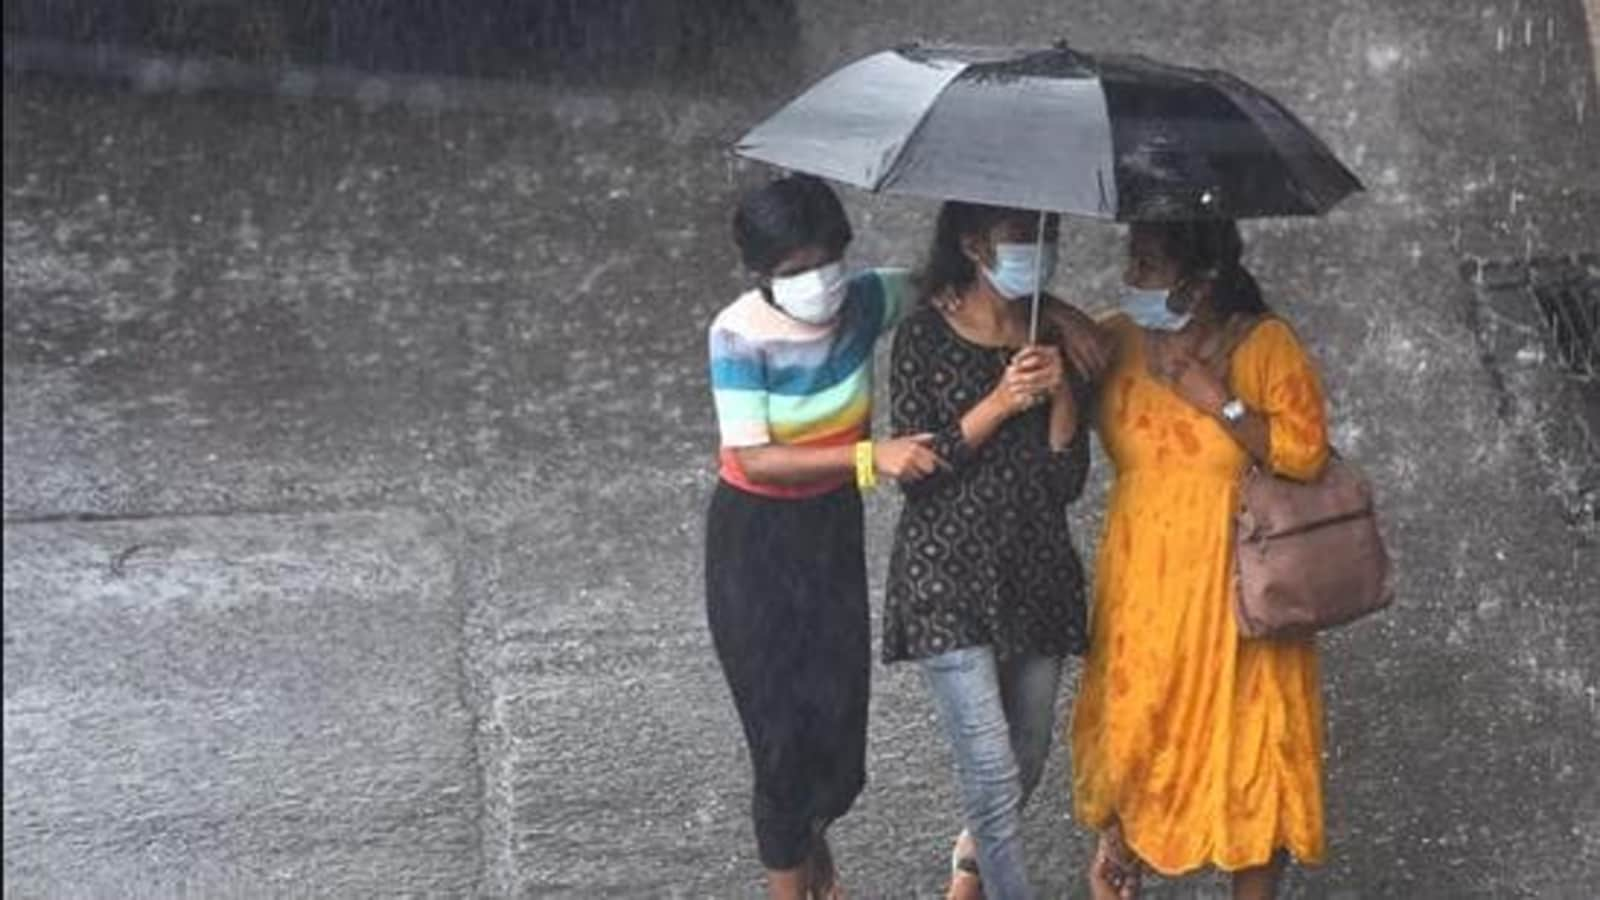 IMD issues red alert for heavy rains in south Bengal; 35,000 evacuated